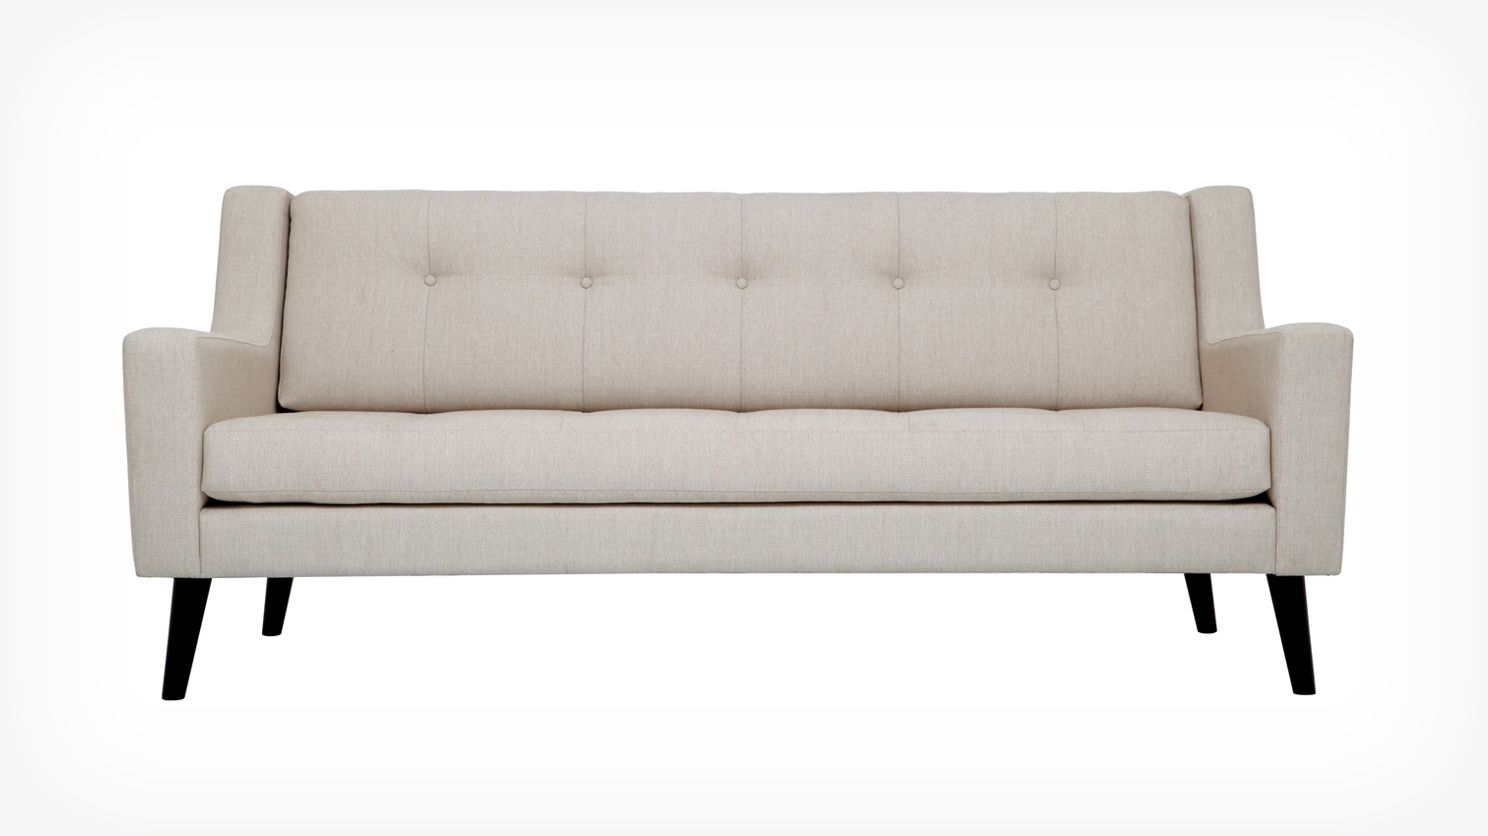 Elise Sofa Fabric Eq3 Modern Furniture 1399 Showrooms In Nyc Downtown 165 Grand Street New York Ny 10013 T 212 966 7201